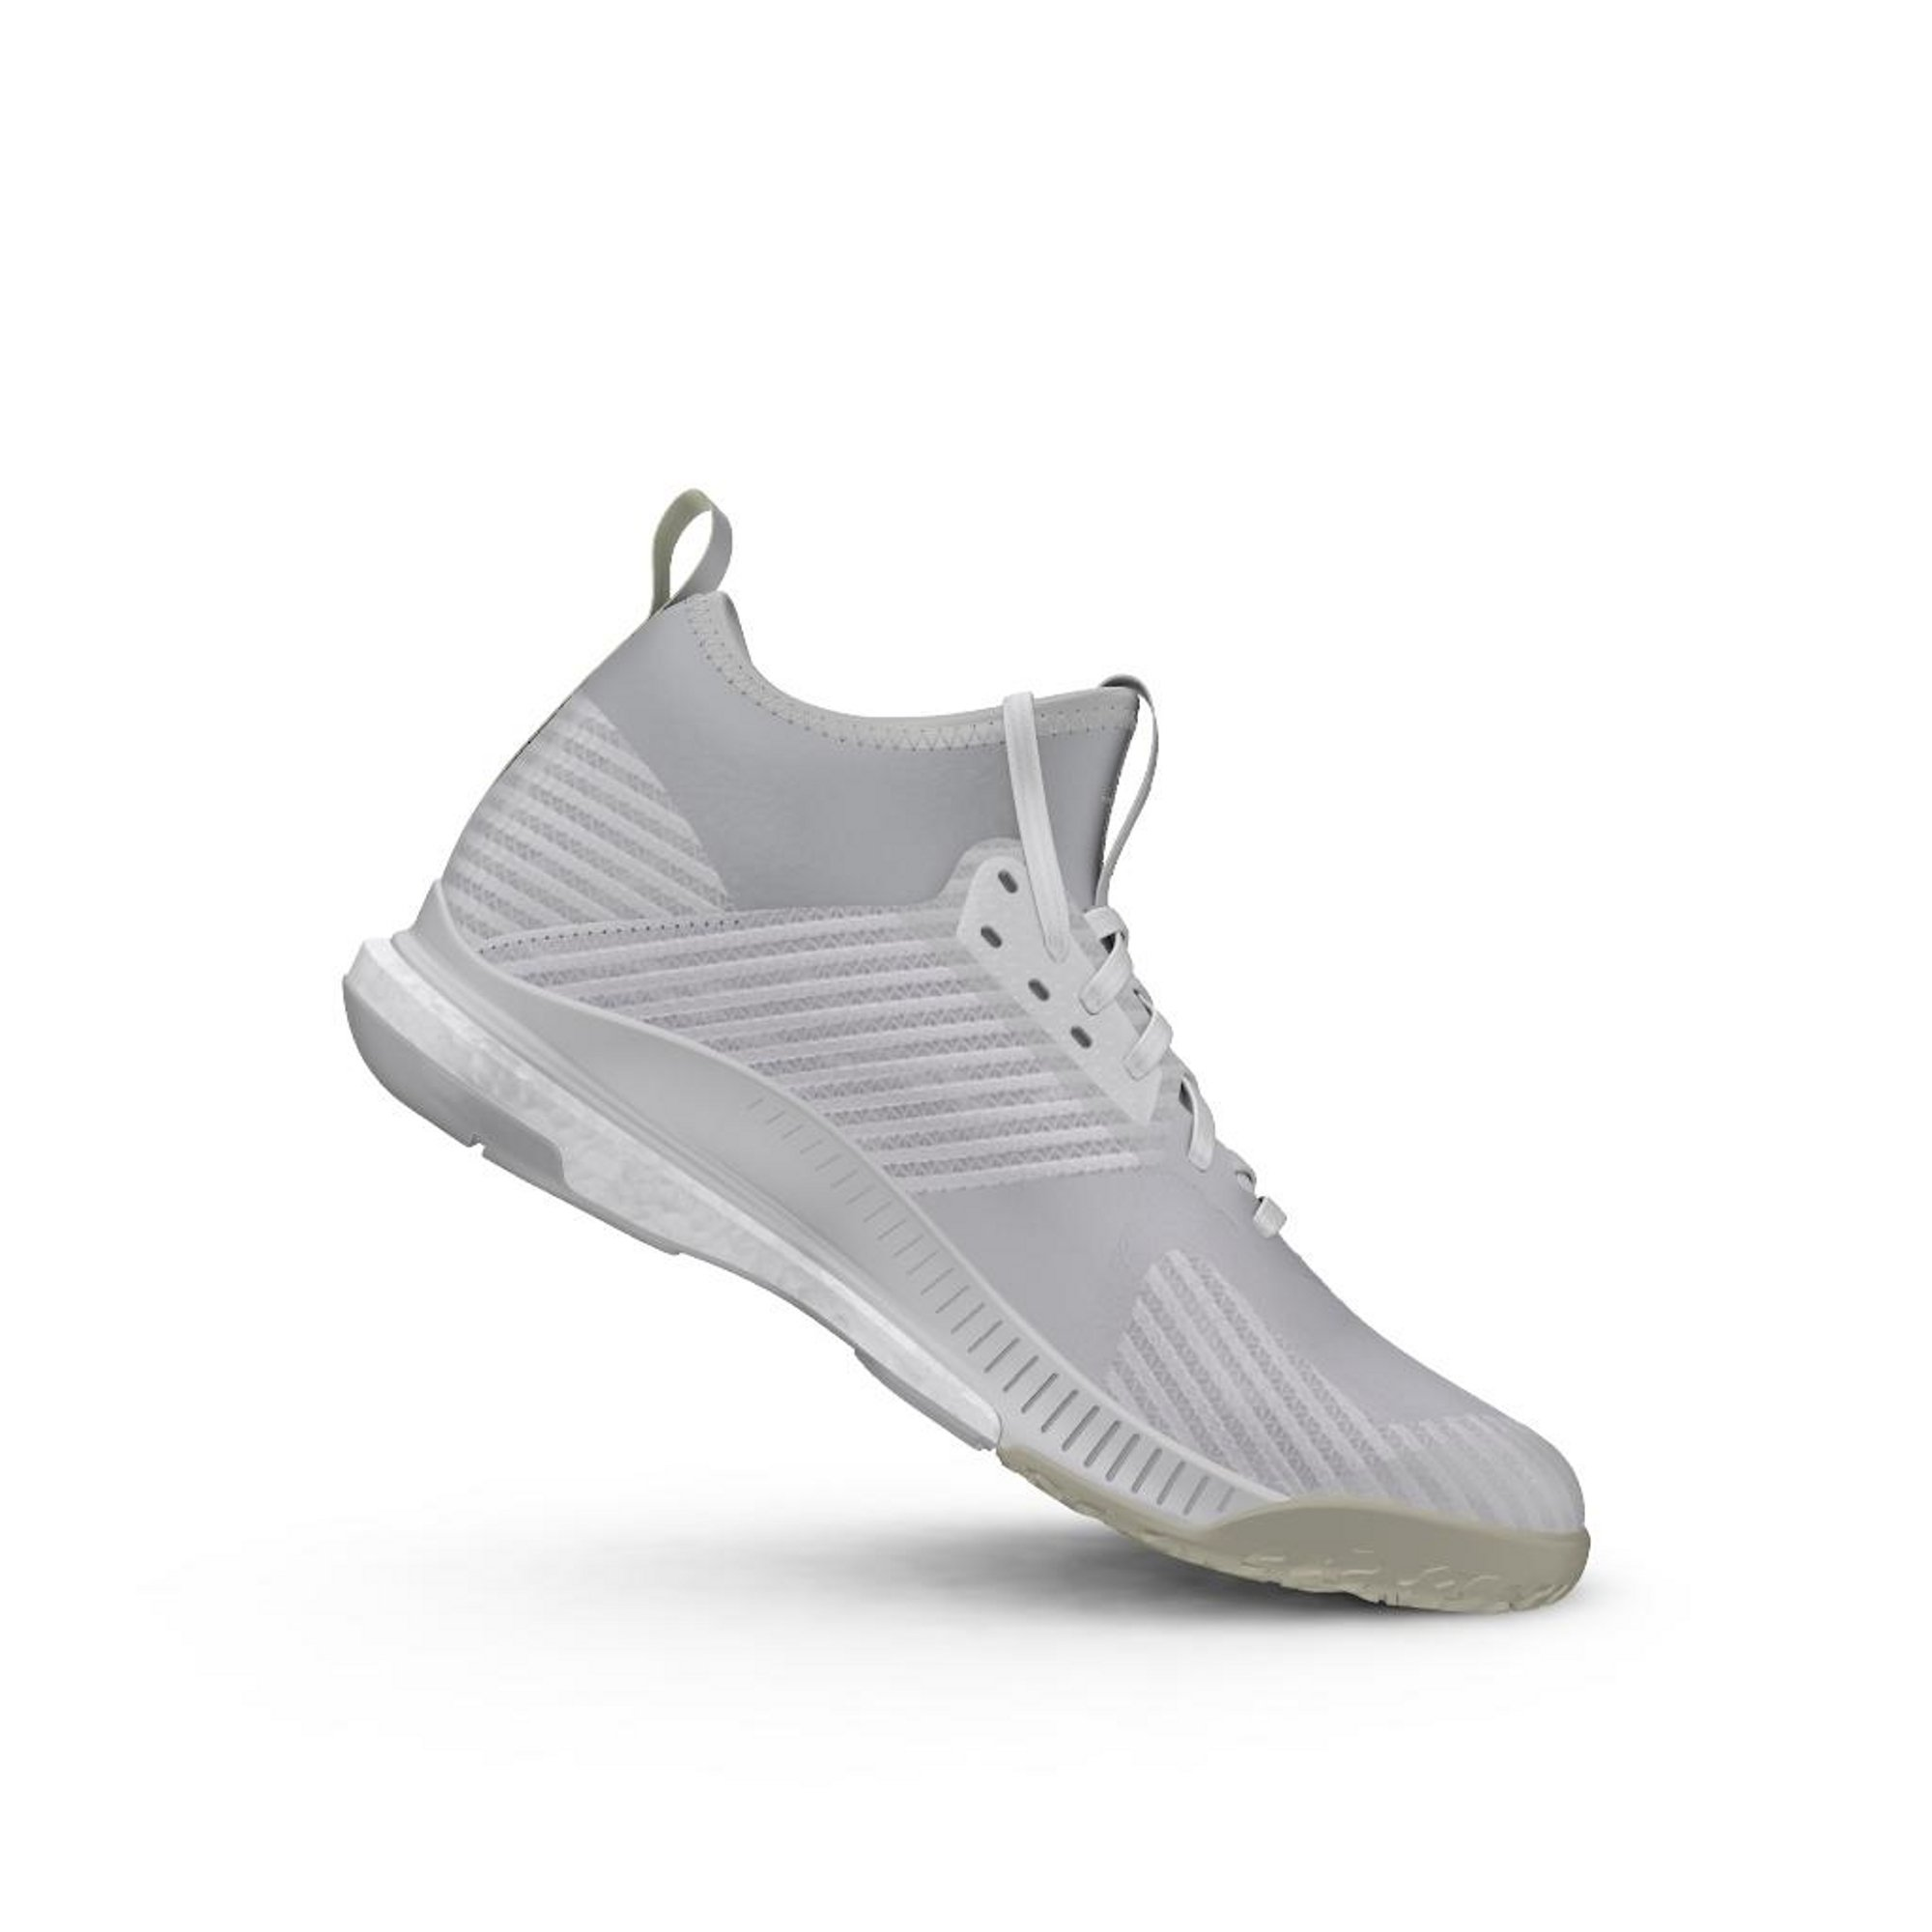 new concept 762b7 0779f ... ADIDAS CRAZYFLIGHT X MID 2 WHITE SILVER MET - gallery 6